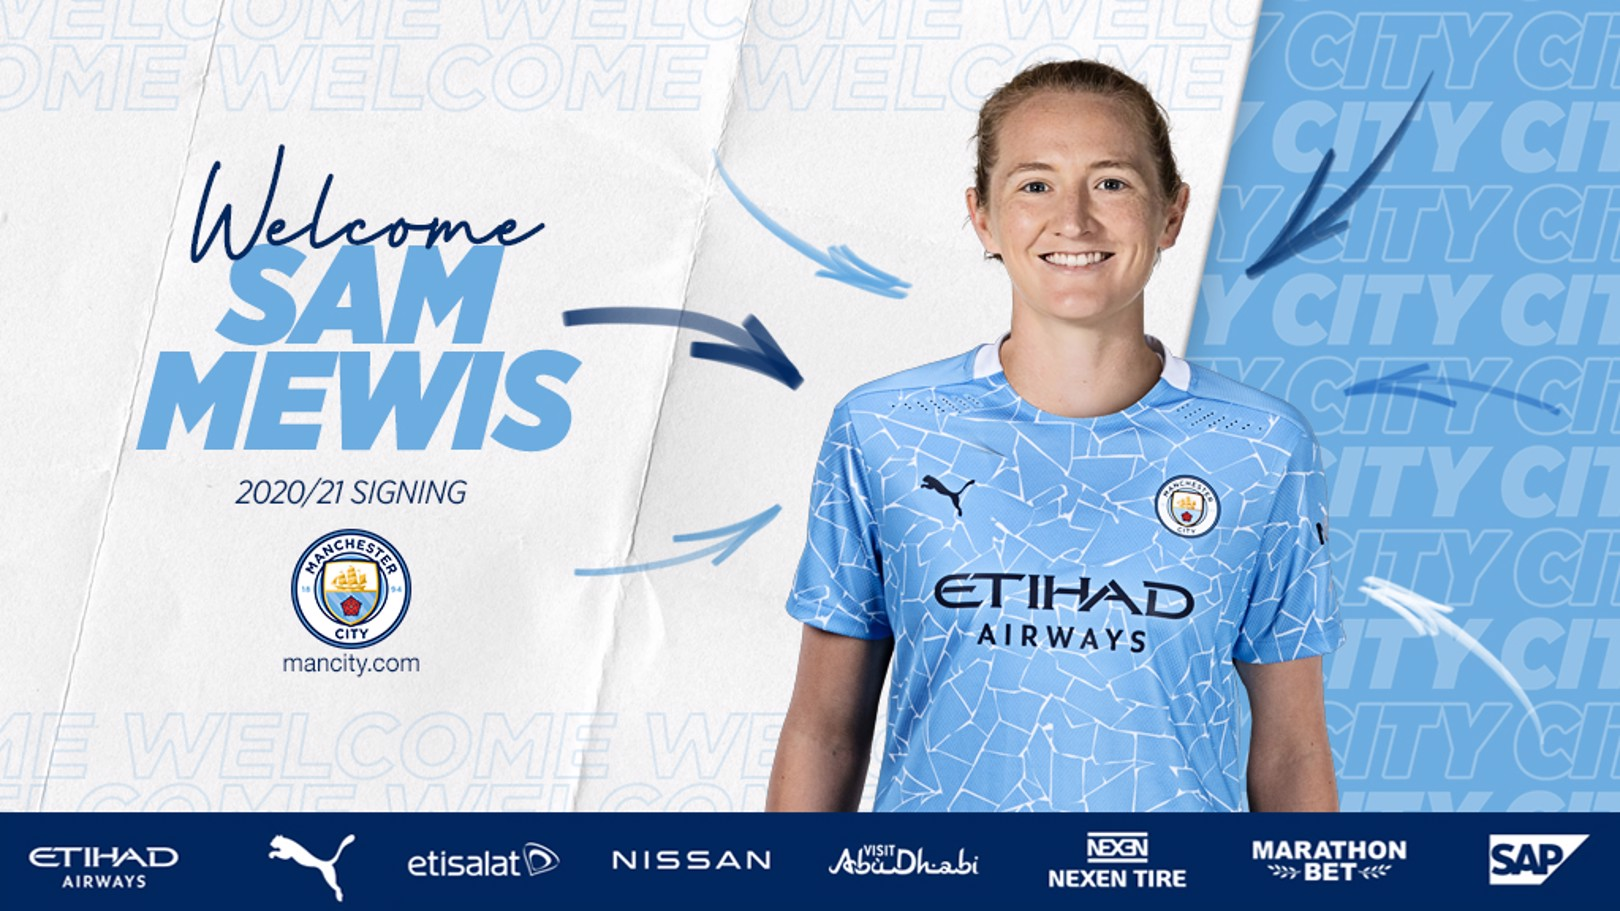 Sam Mewis signs for City